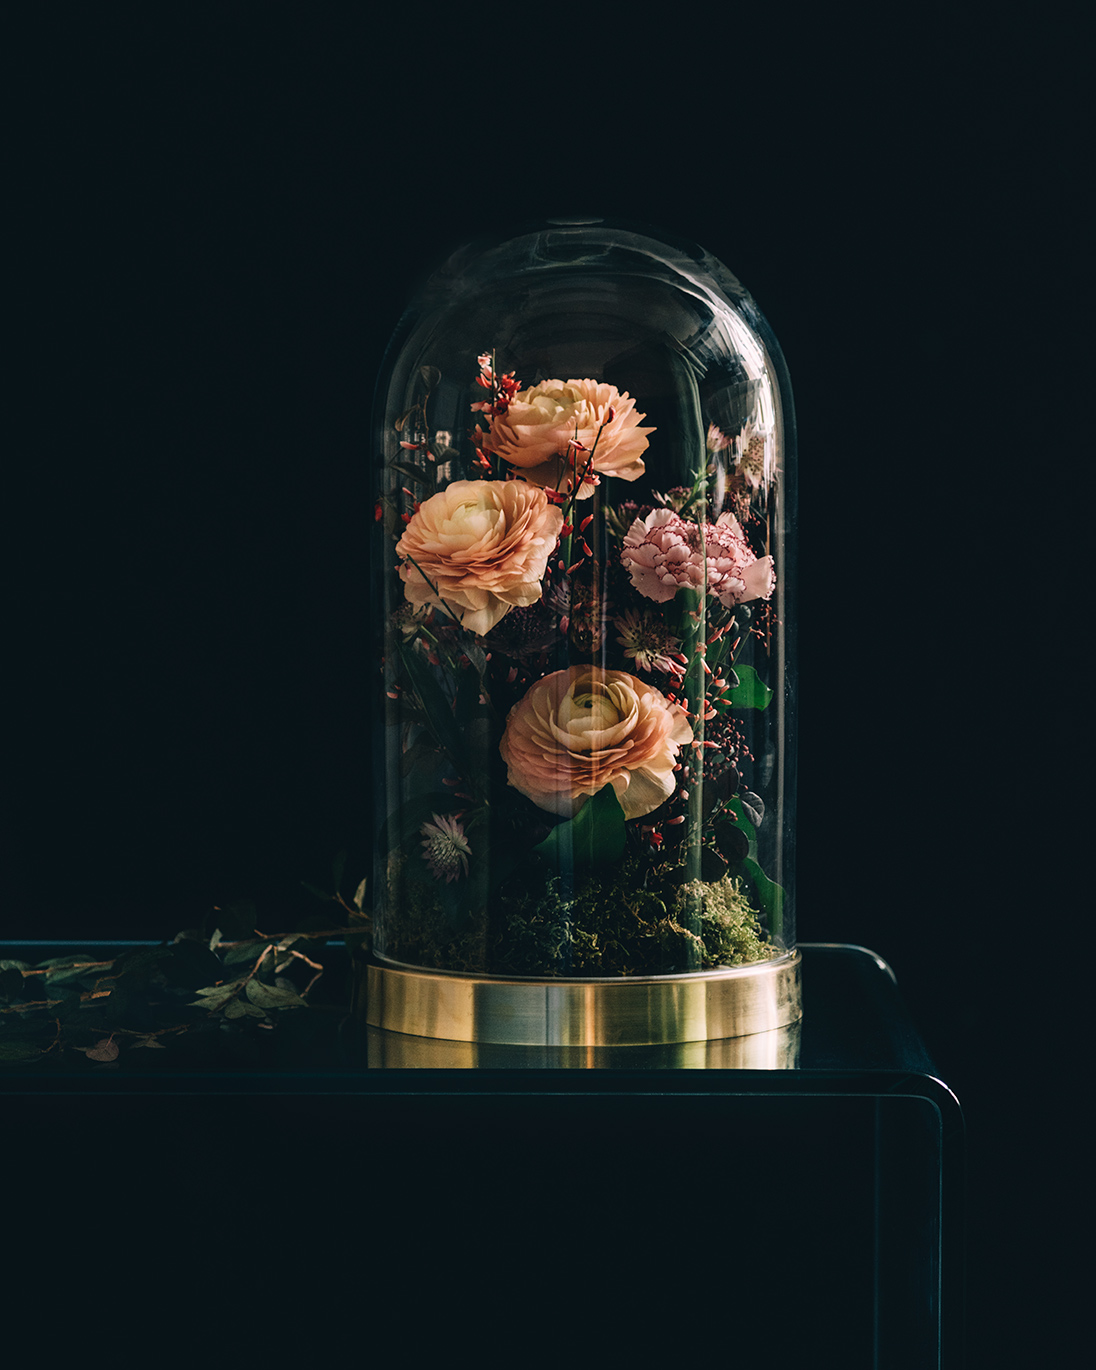 An unexpected arrangement of plump ranunculus and fresh carnations arranged within a gold-rimmed bell jar